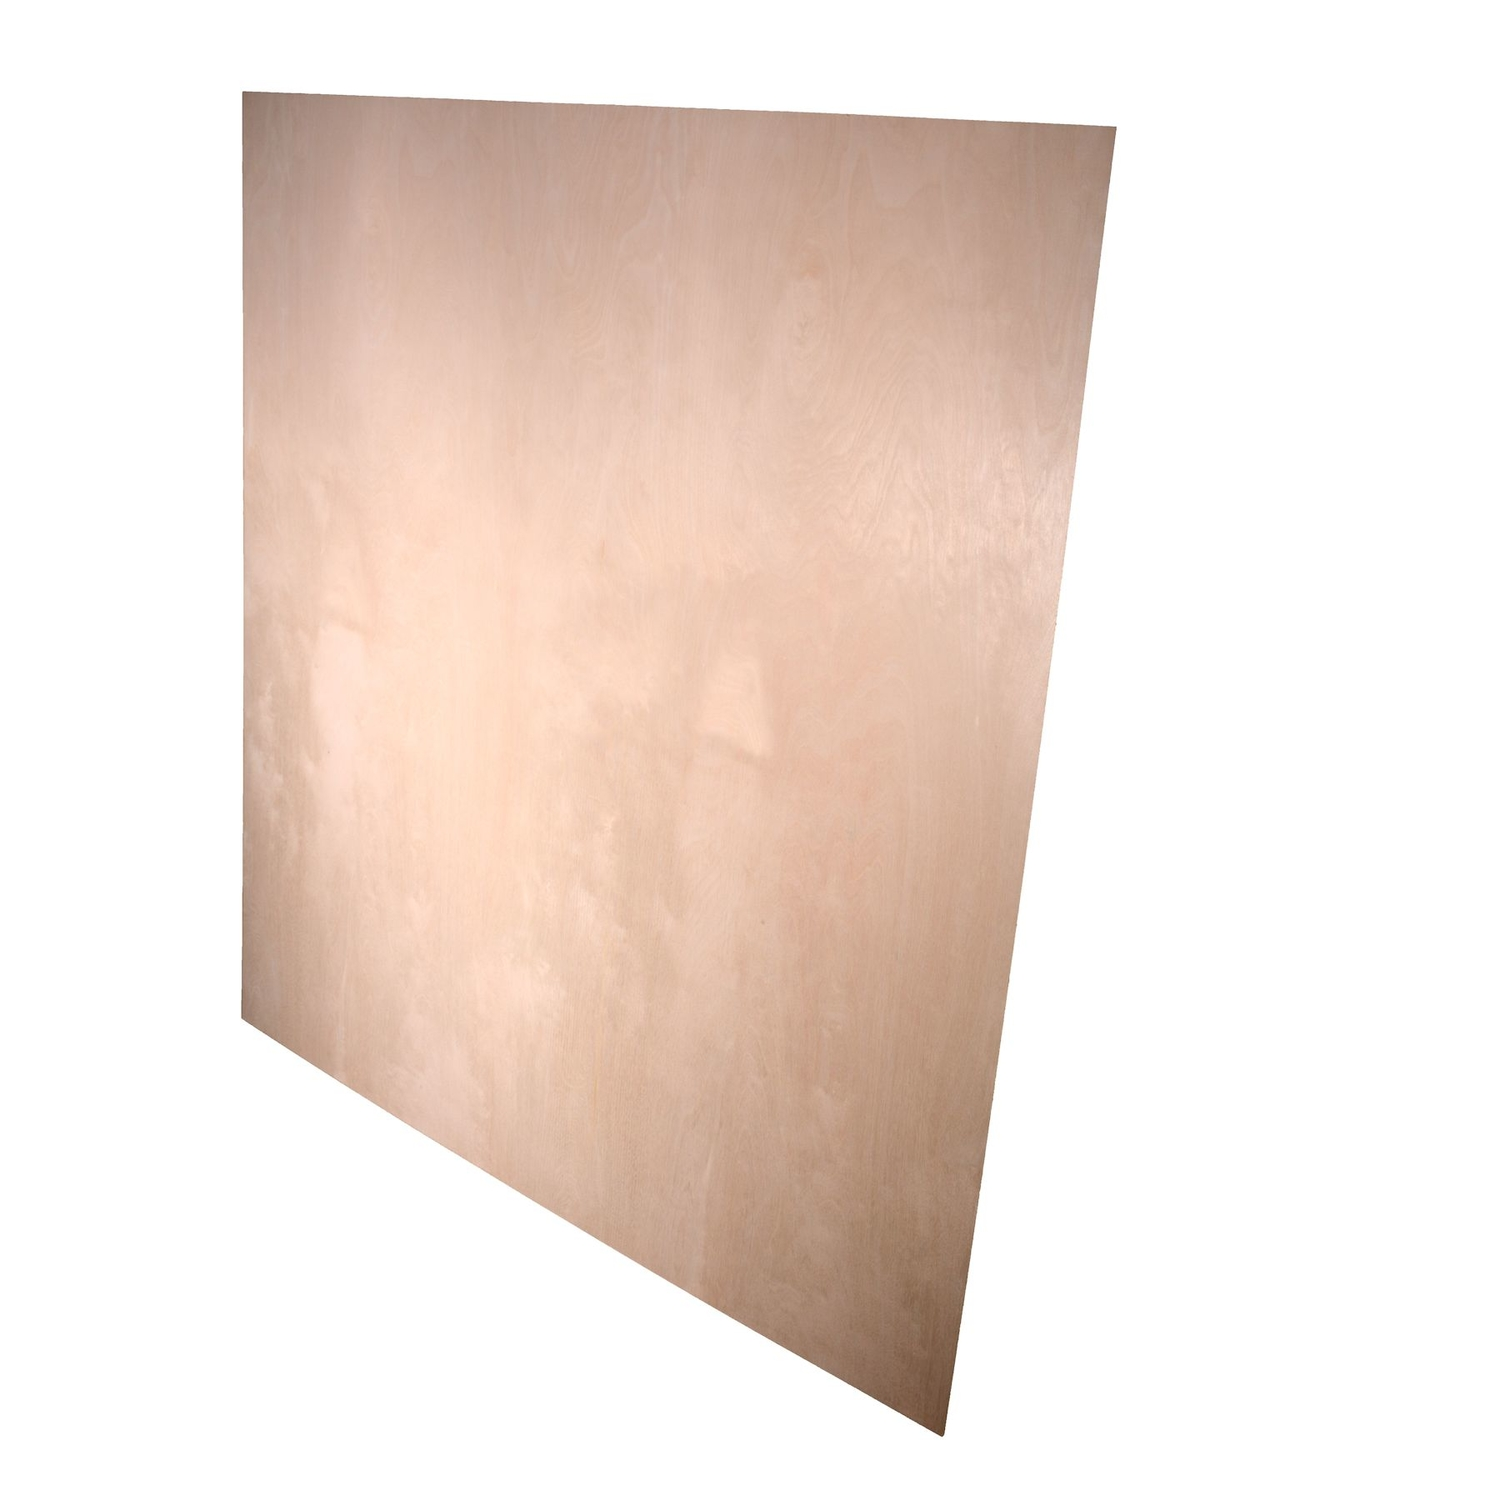 Alexandria Moulding  4 ft. W x 4 ft. L x 0.25 in.  Plywood